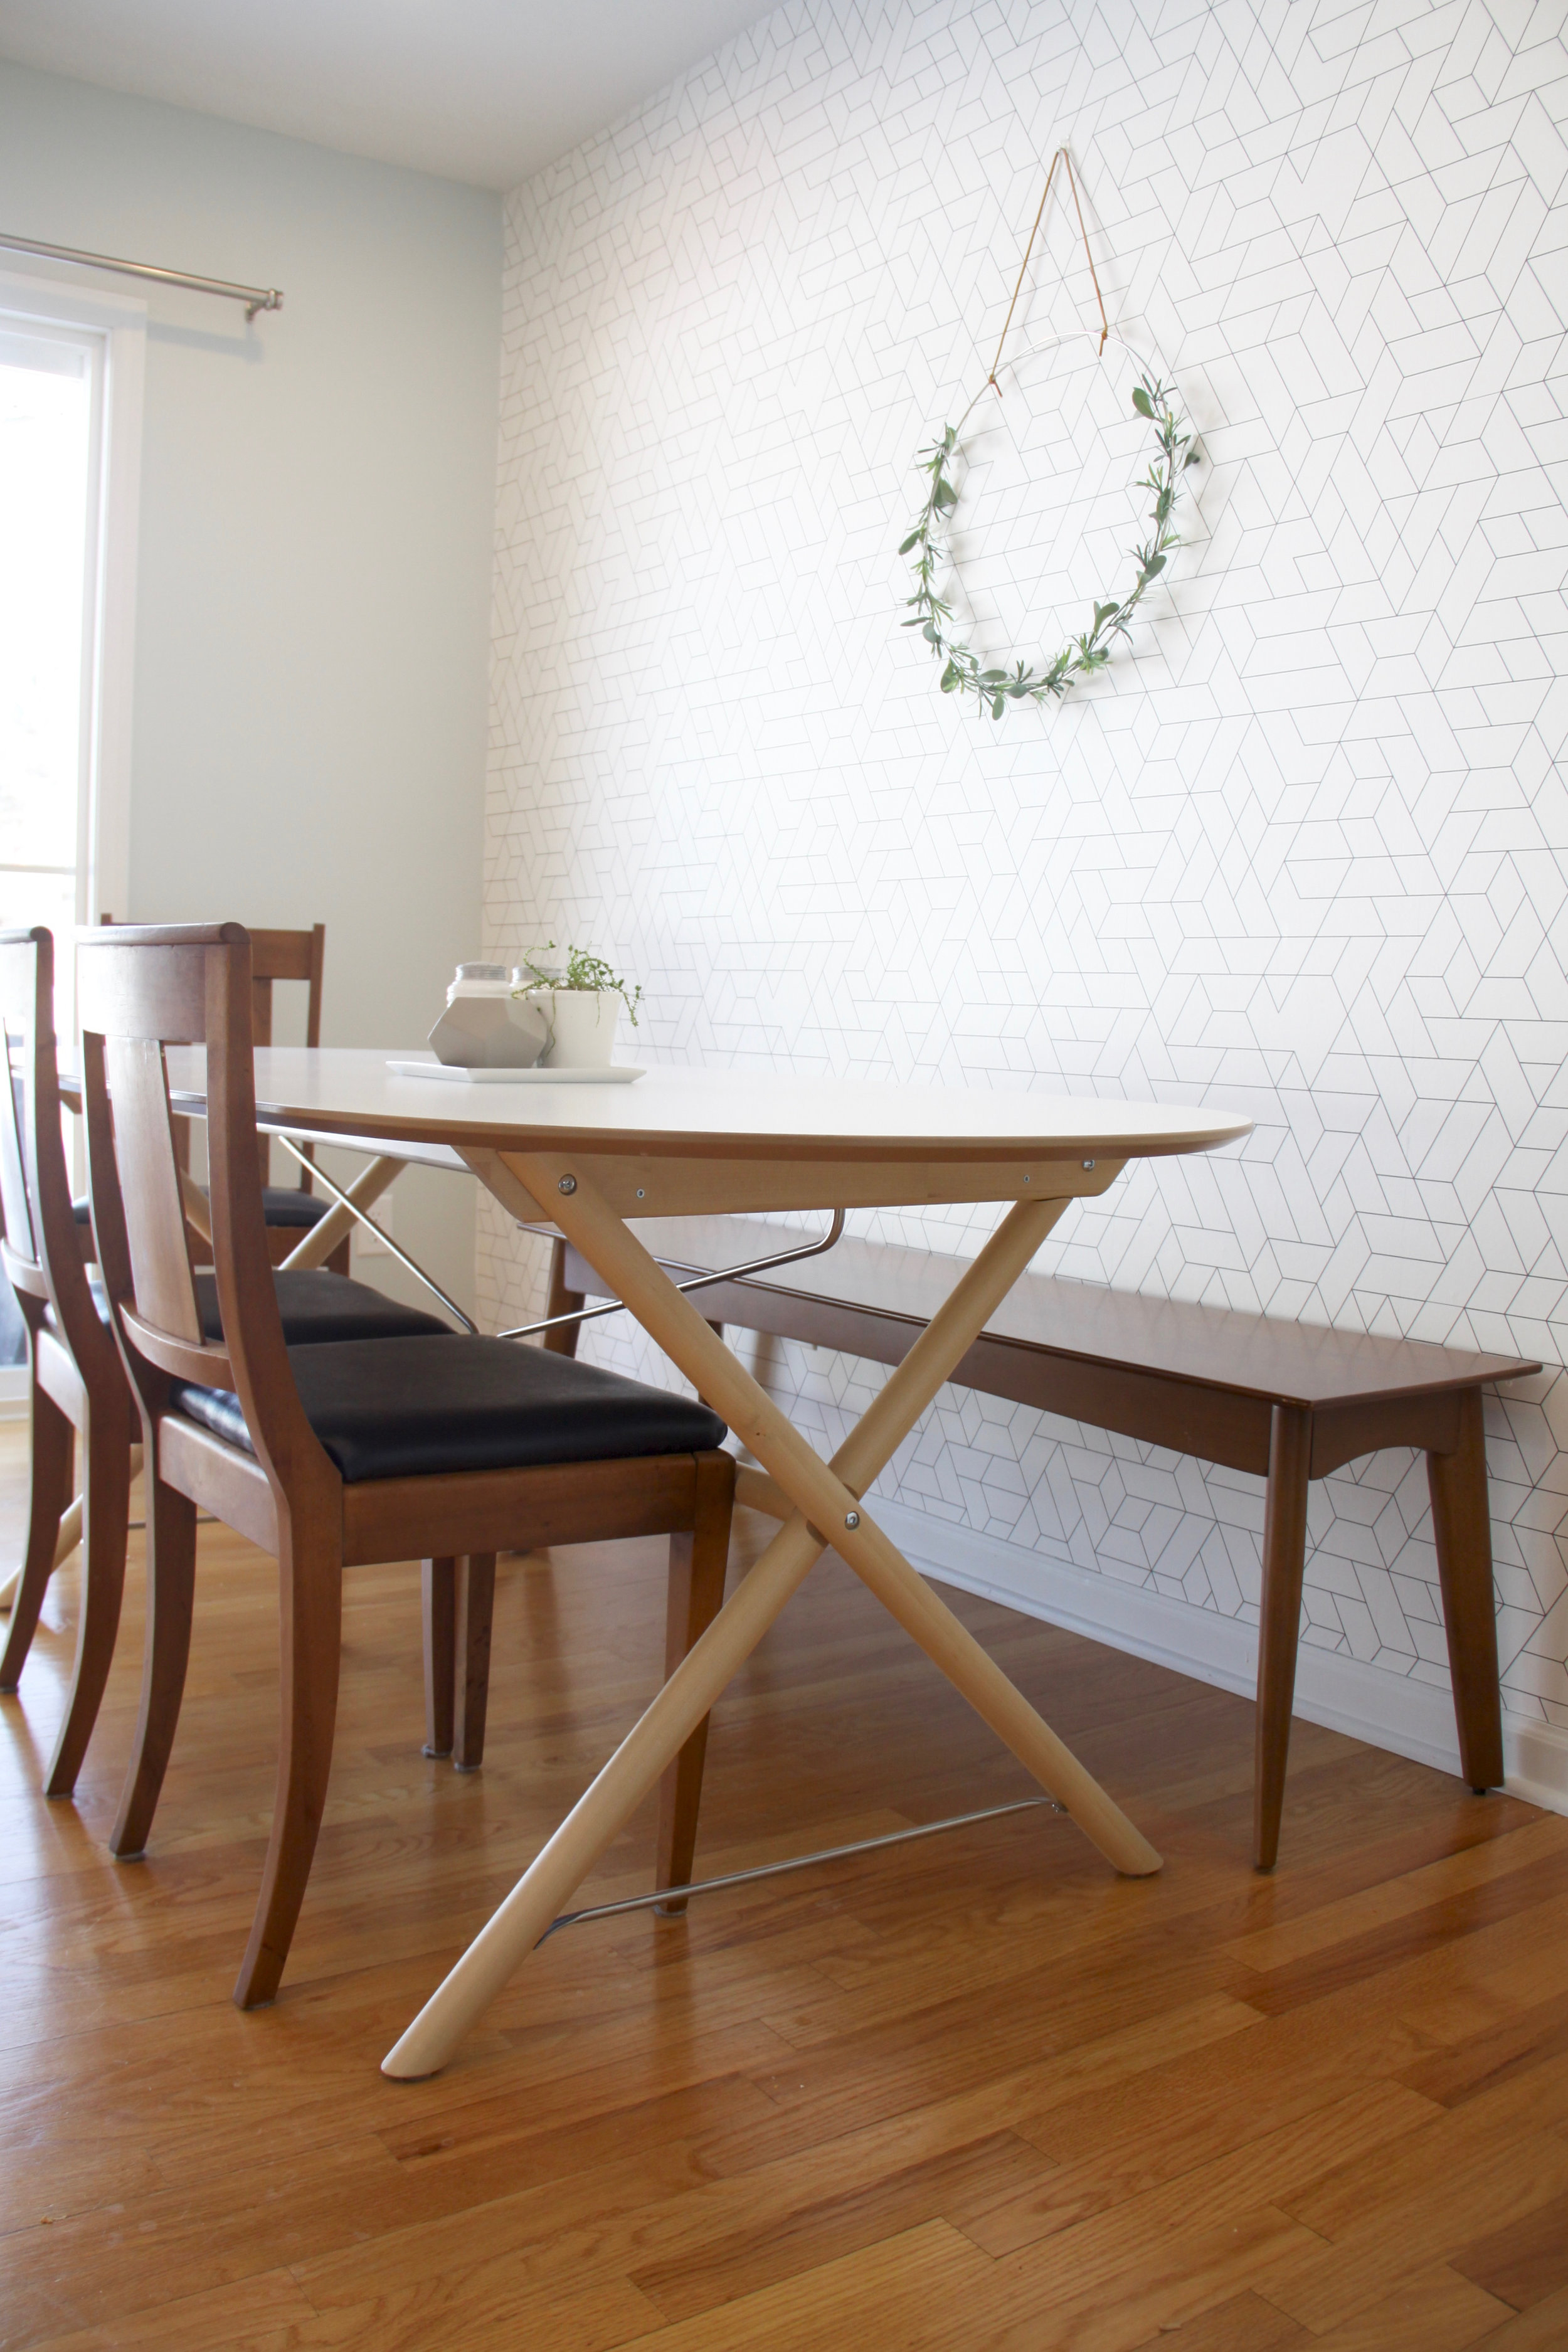 Mid century dining table with graphic wallpaper IKEA SLAHULT